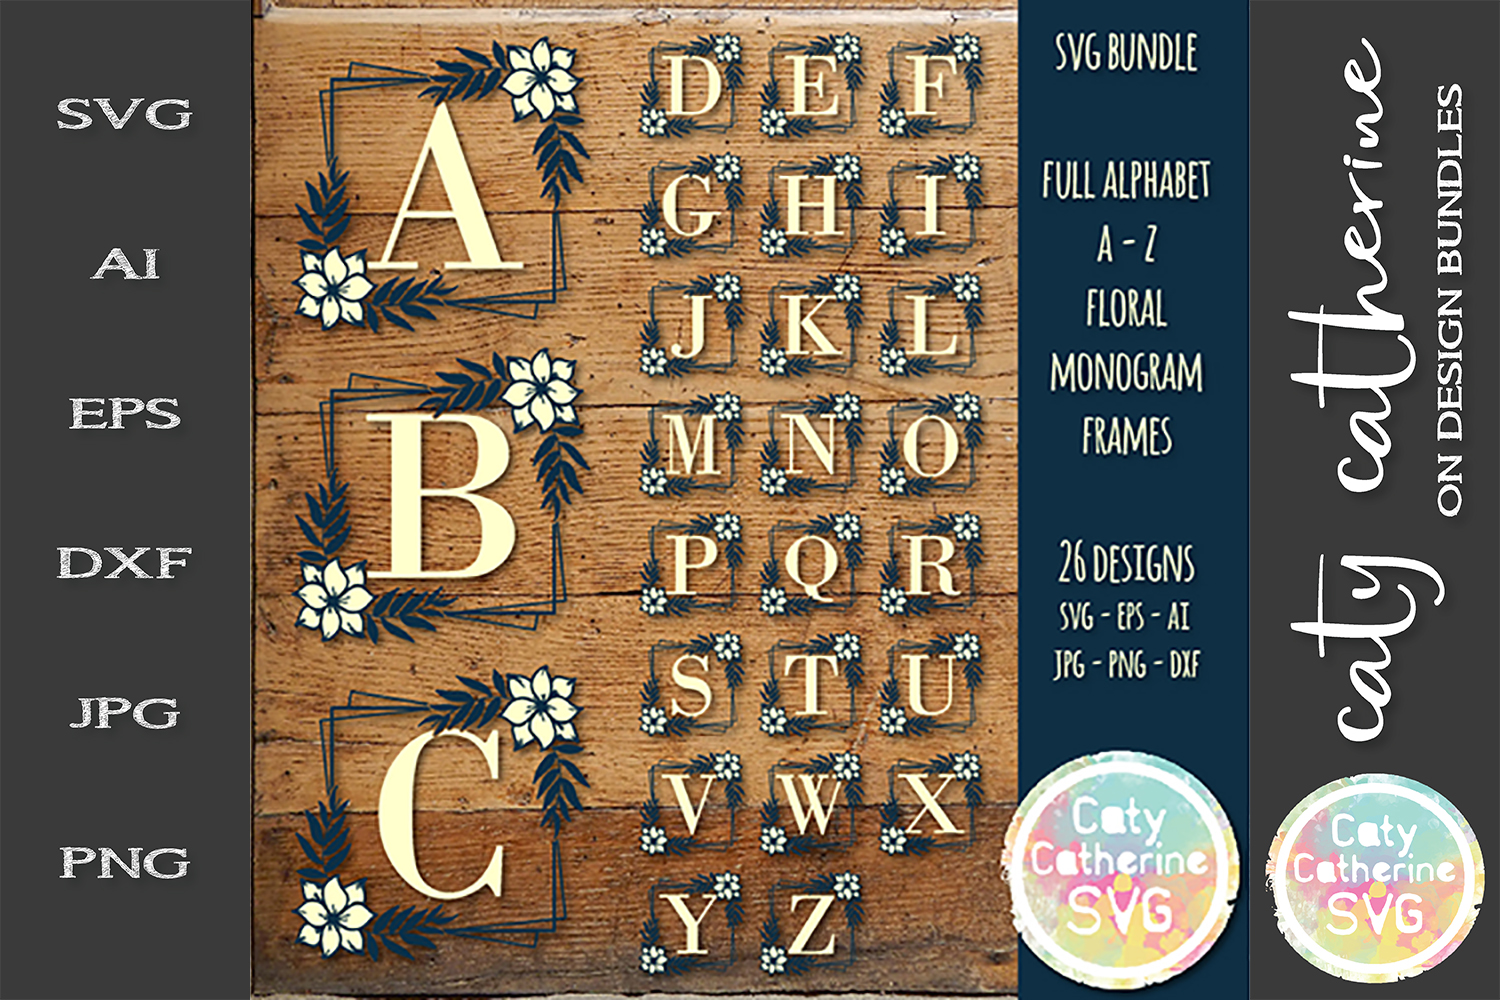 Full Alphabet A-Z With Floral Frame SVG Bundle Cut Files example image 1